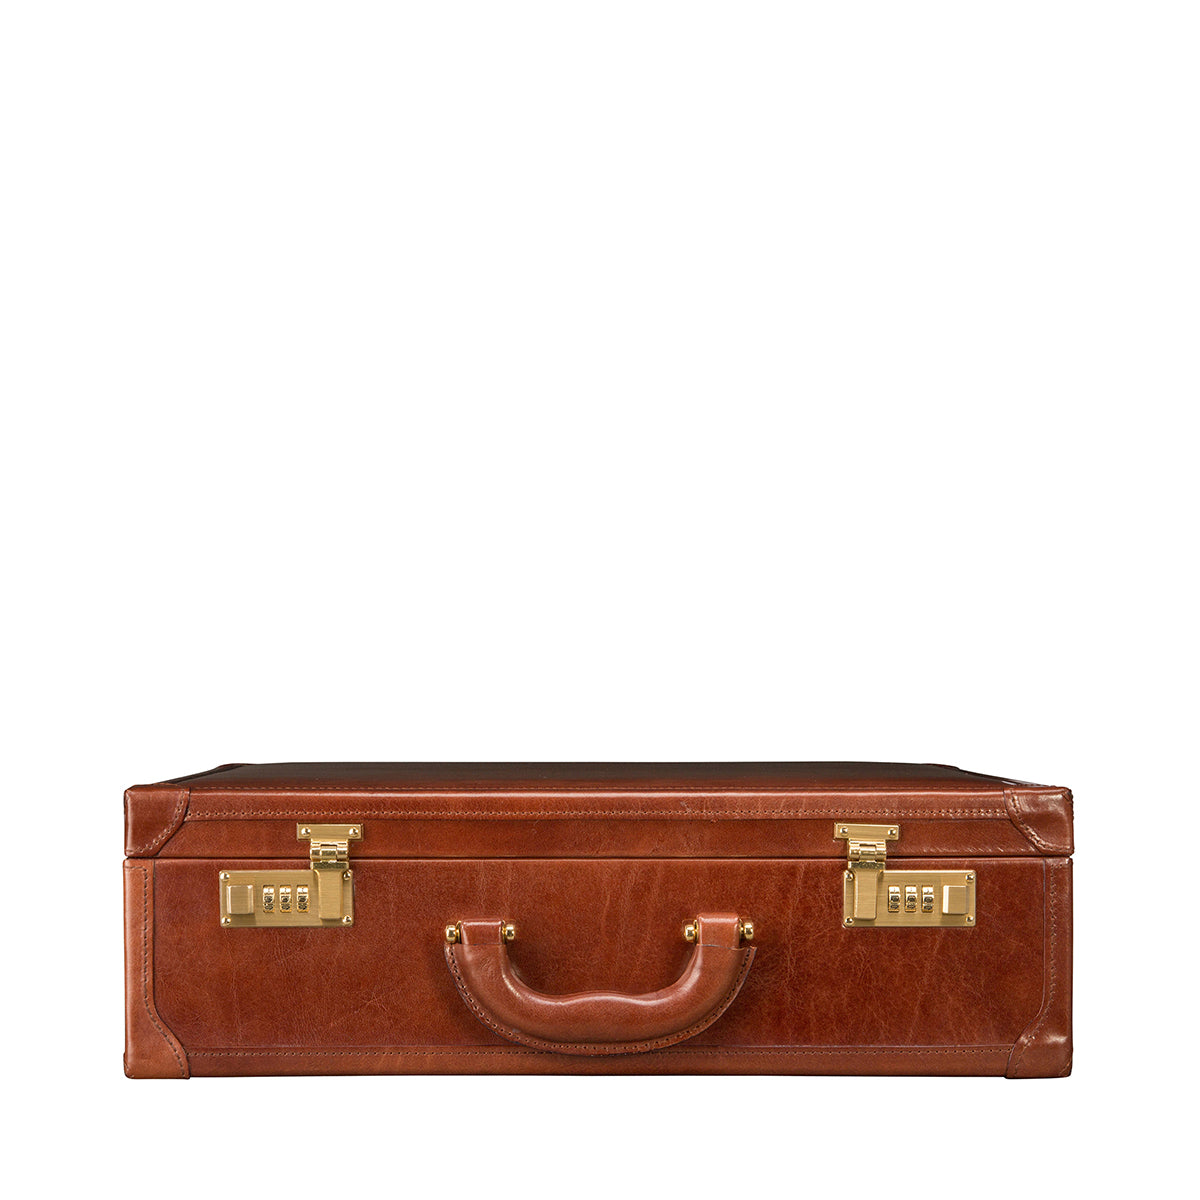 Image 4 of the 'Buroni' Chestnut Veg-Tanned Leather Business Attaché  Case